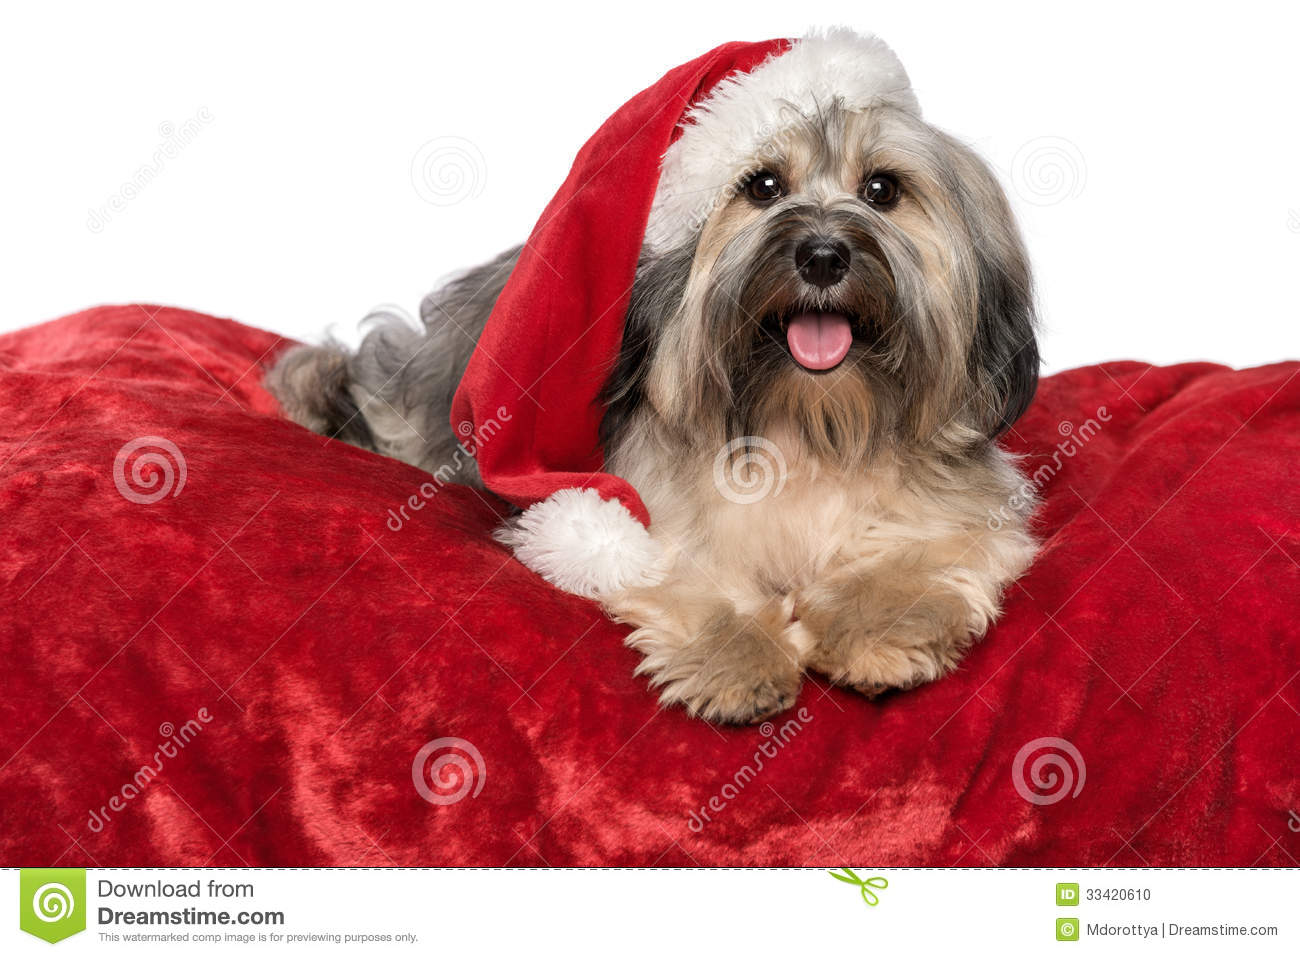 Cute Dog Puppy Background Wallpaper Pictures Cute Christmas Dog With A Santa Hat Is Lying On A Red